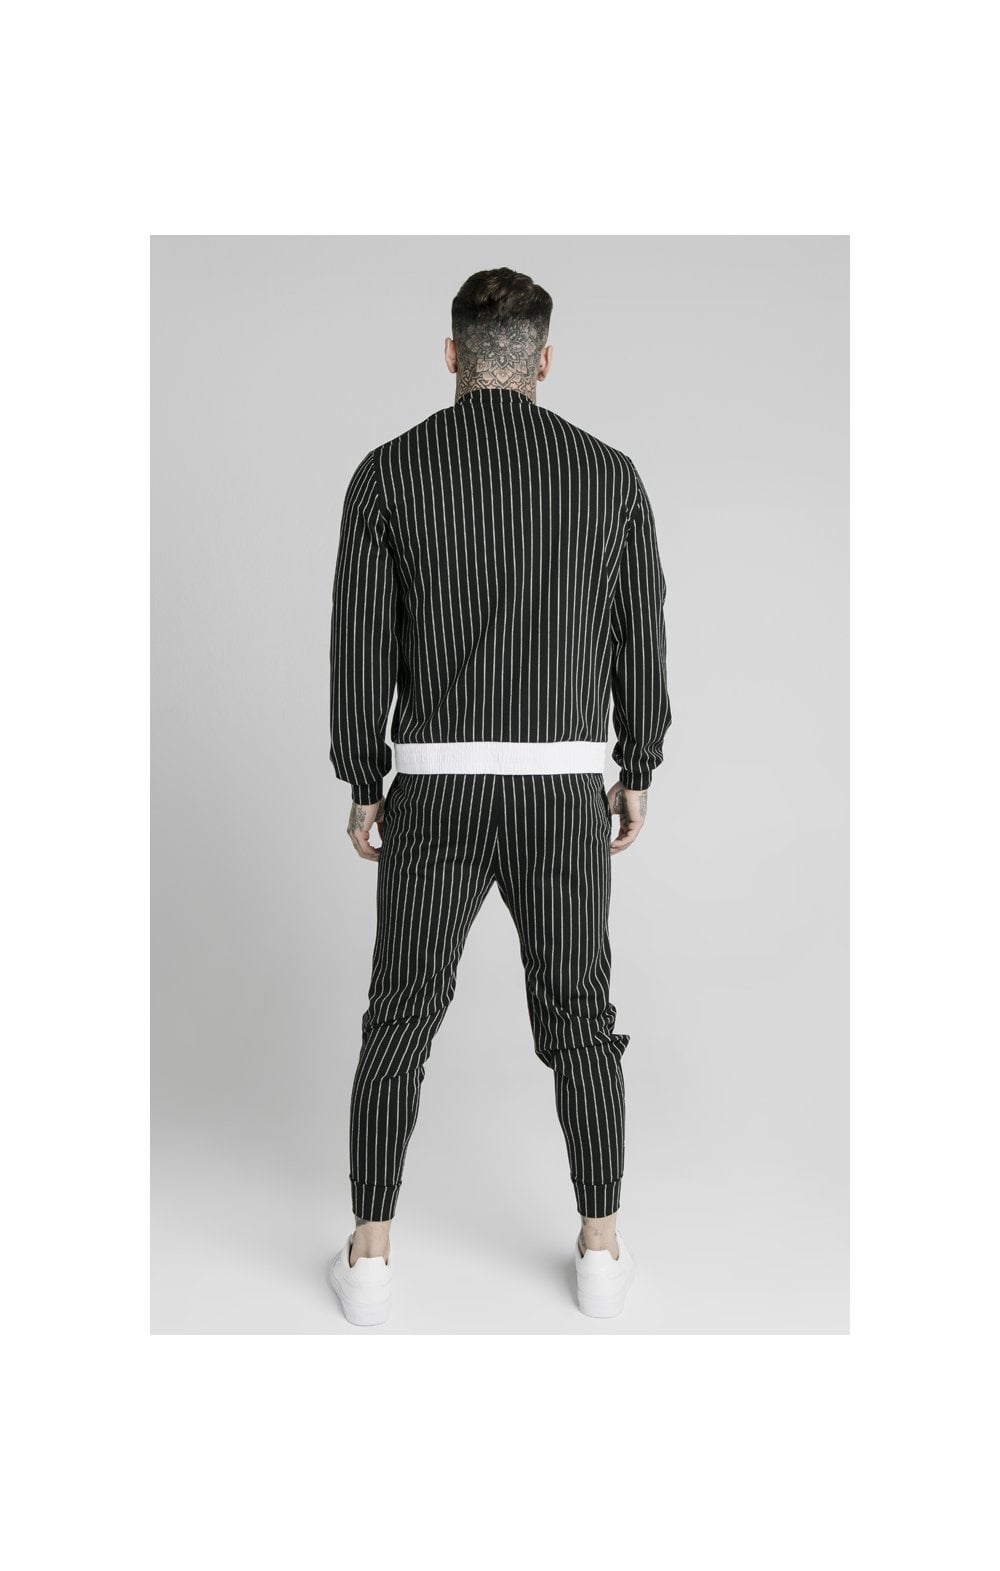 SikSilk Pinstripe Cuff Pants - Black & White (3)